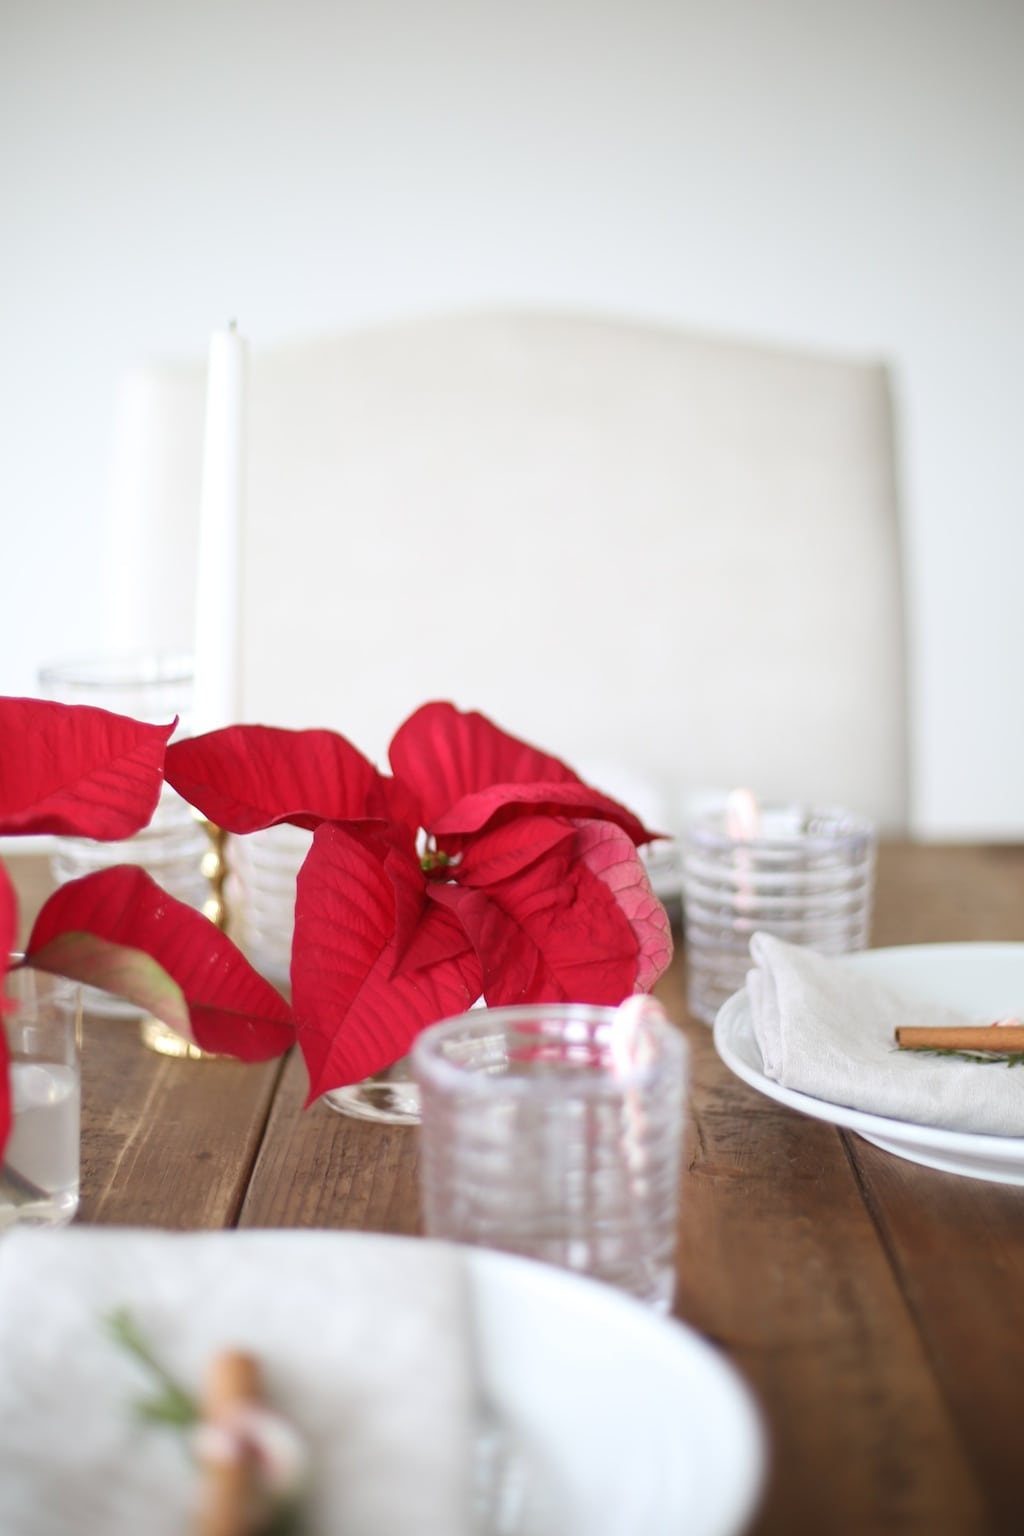 DIY Poinsettia centerpiece & entertaining tips with Southern Living magazine